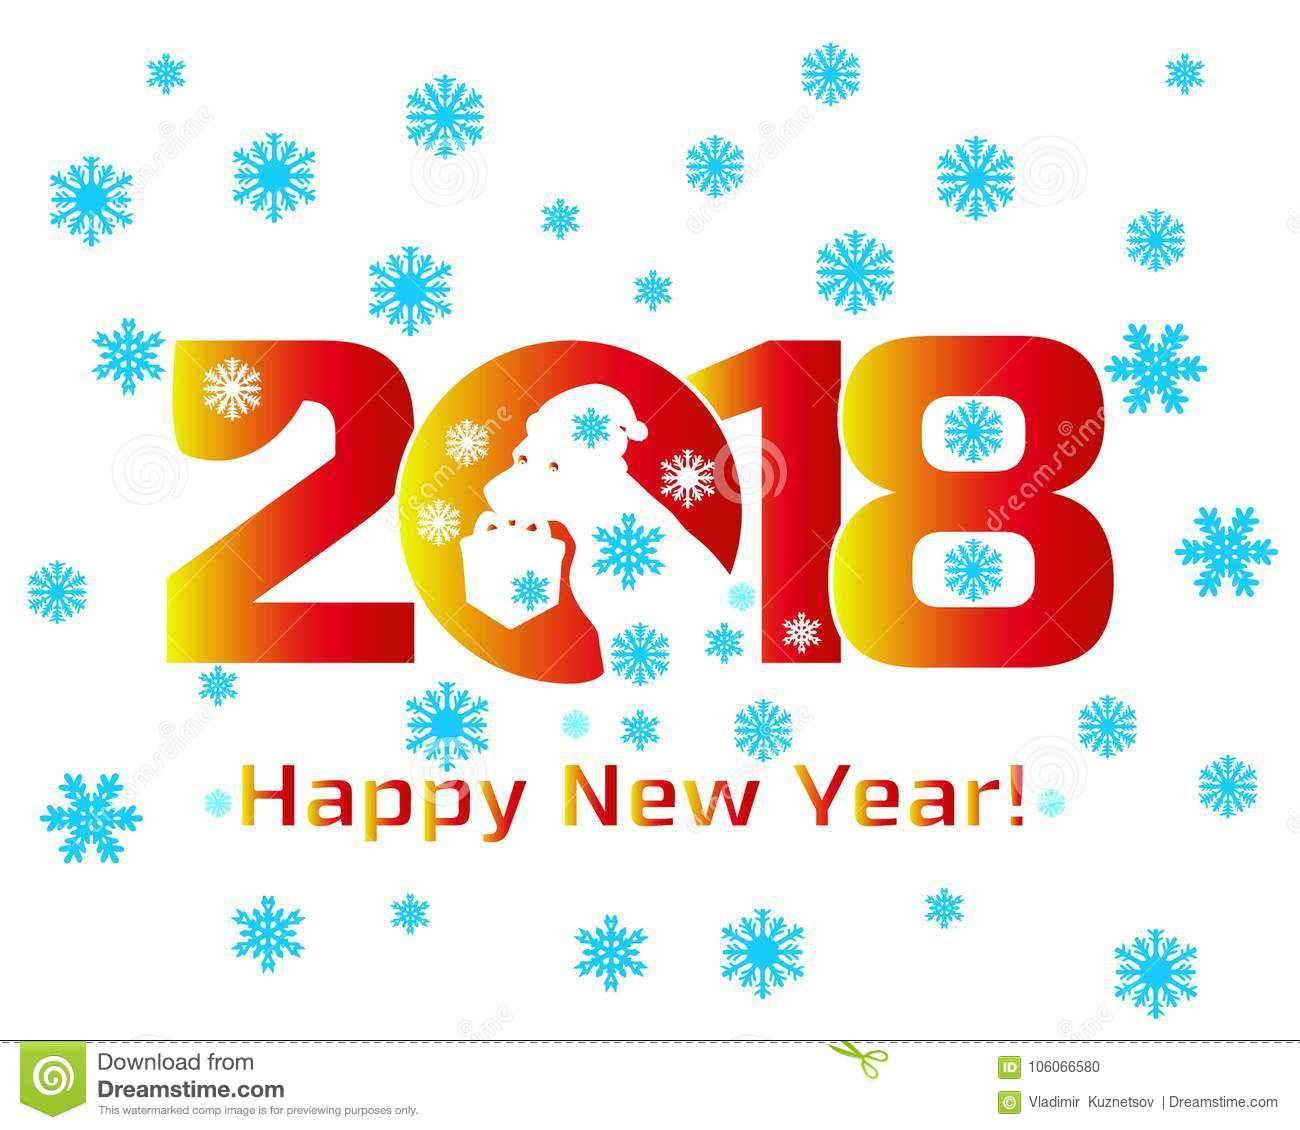 inscription 2018 happy new year and the head of a dog with a gift banner on a white background and snowflakes vector